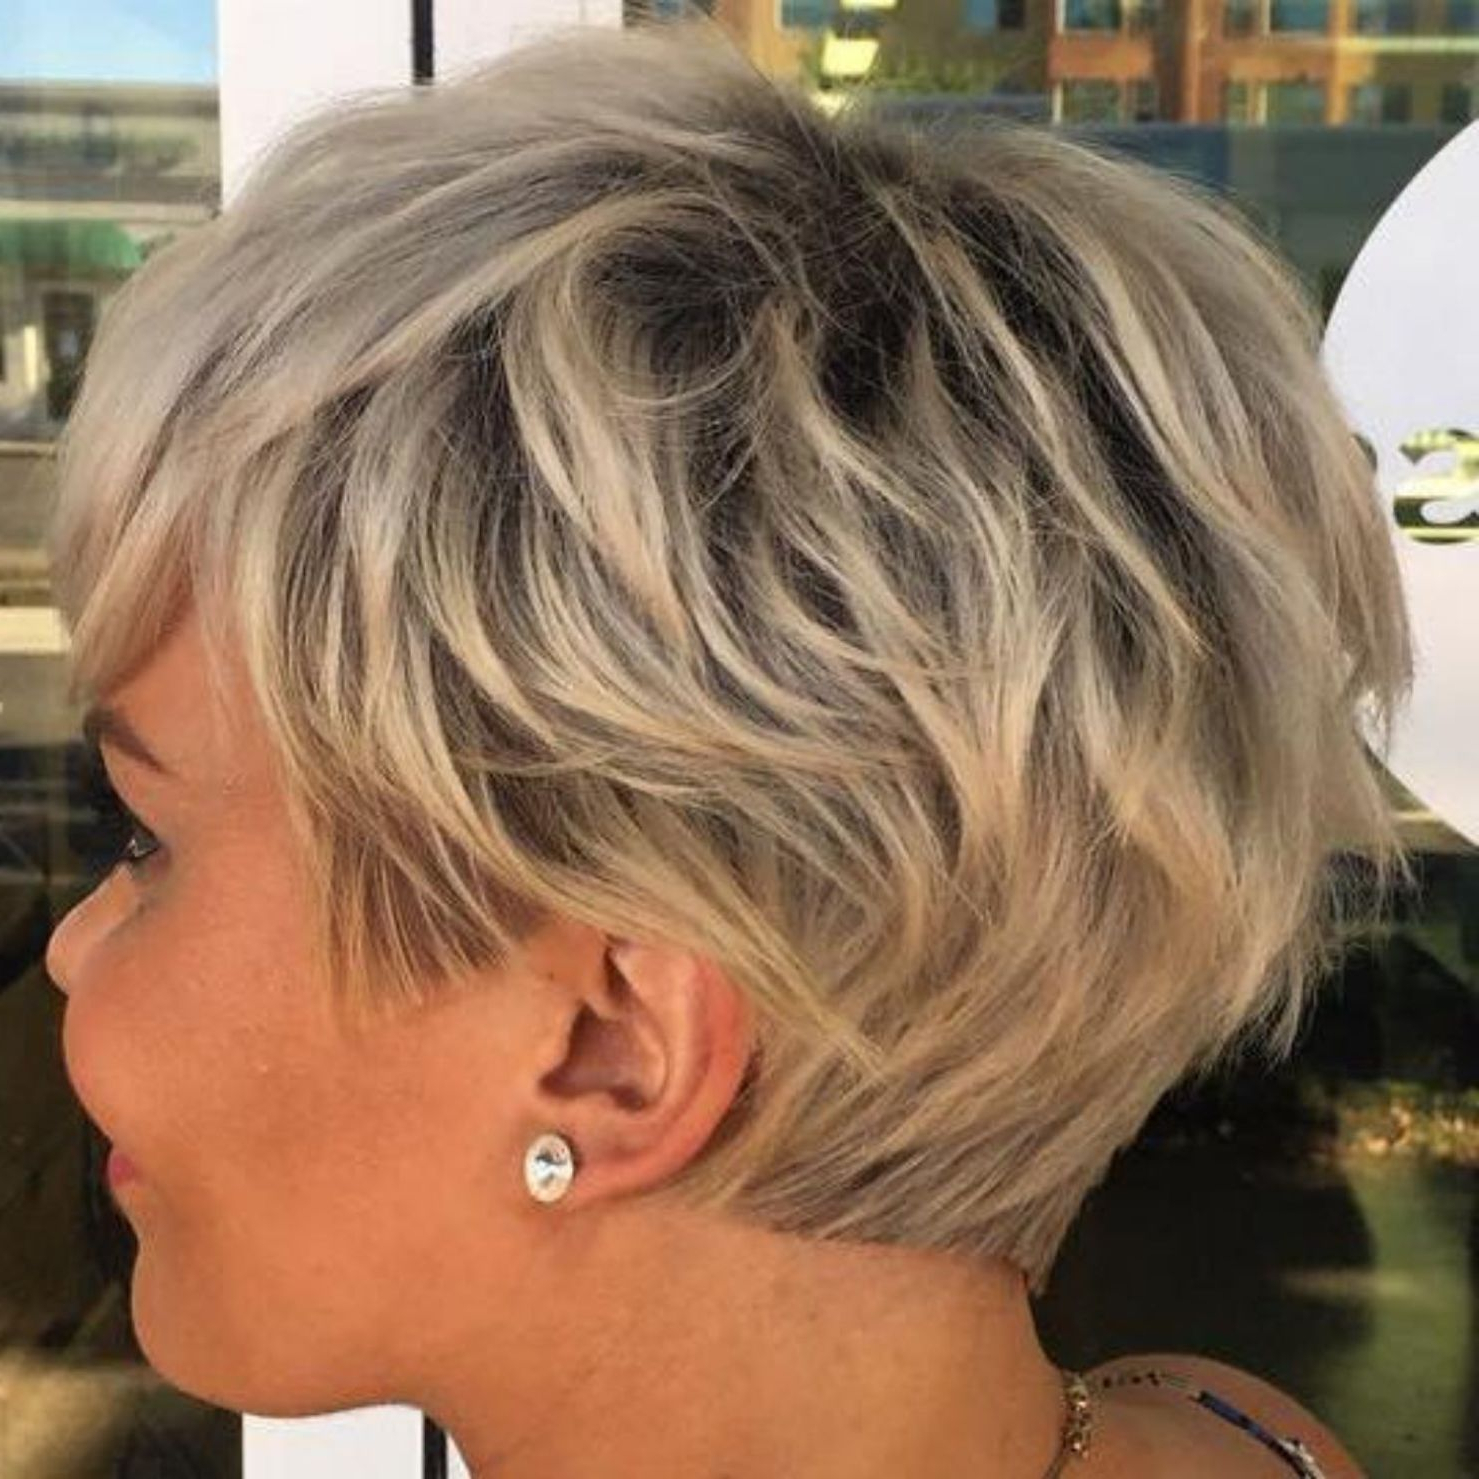 60 Short Shag Hairstyles That You Simply Can't Miss | Girlie Pertaining To Short Shag Blunt Haircuts (View 10 of 20)